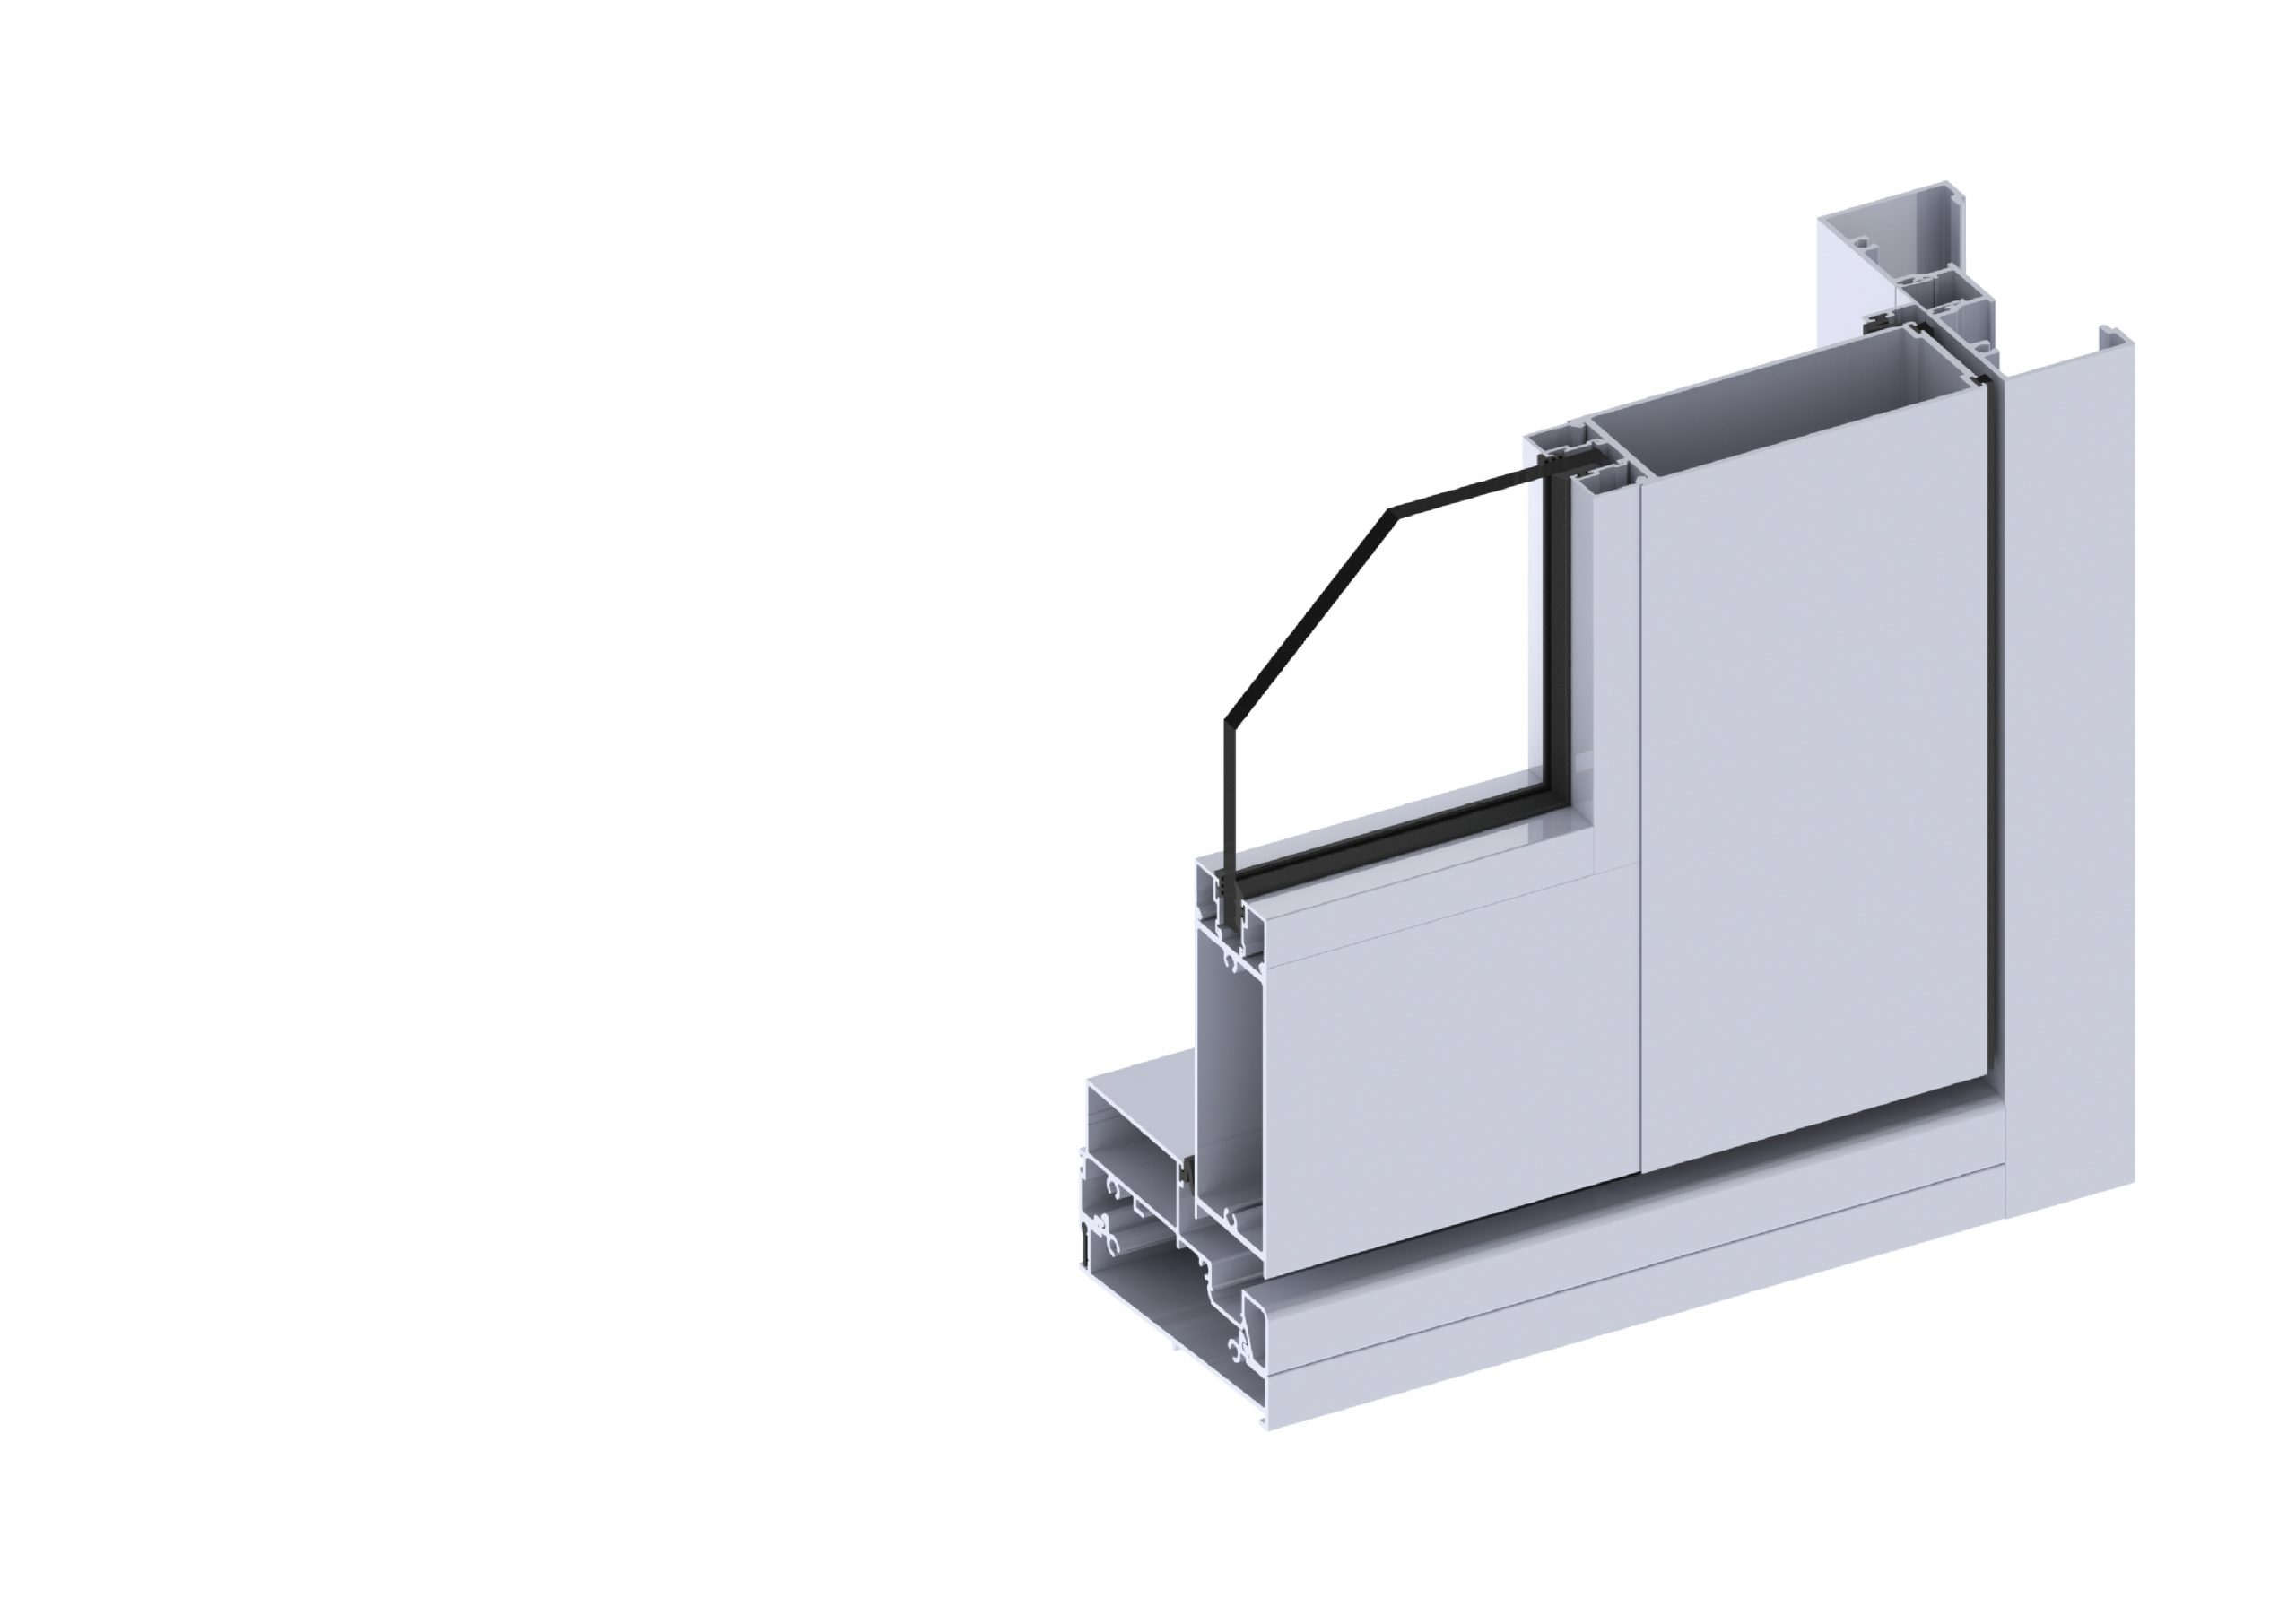 Paragon hinged door section